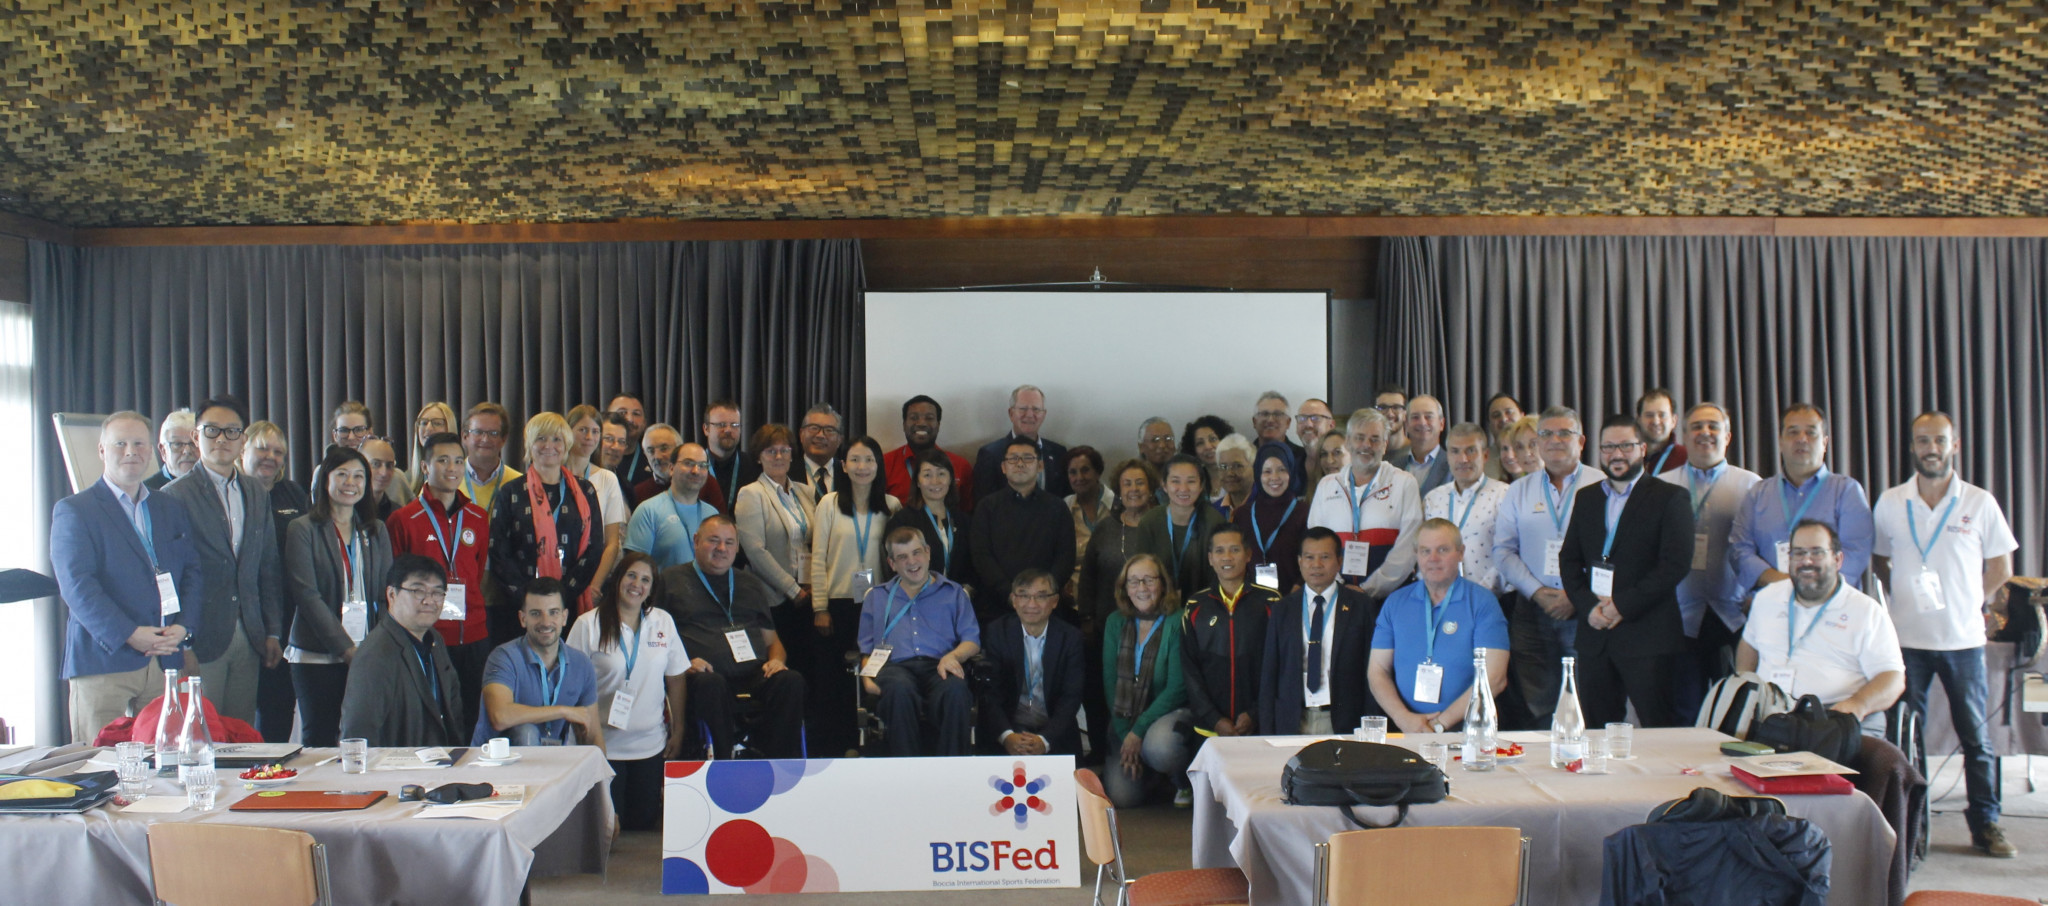 David Hadfield was re-elected at the General Assembly in Portugal ©BISFed